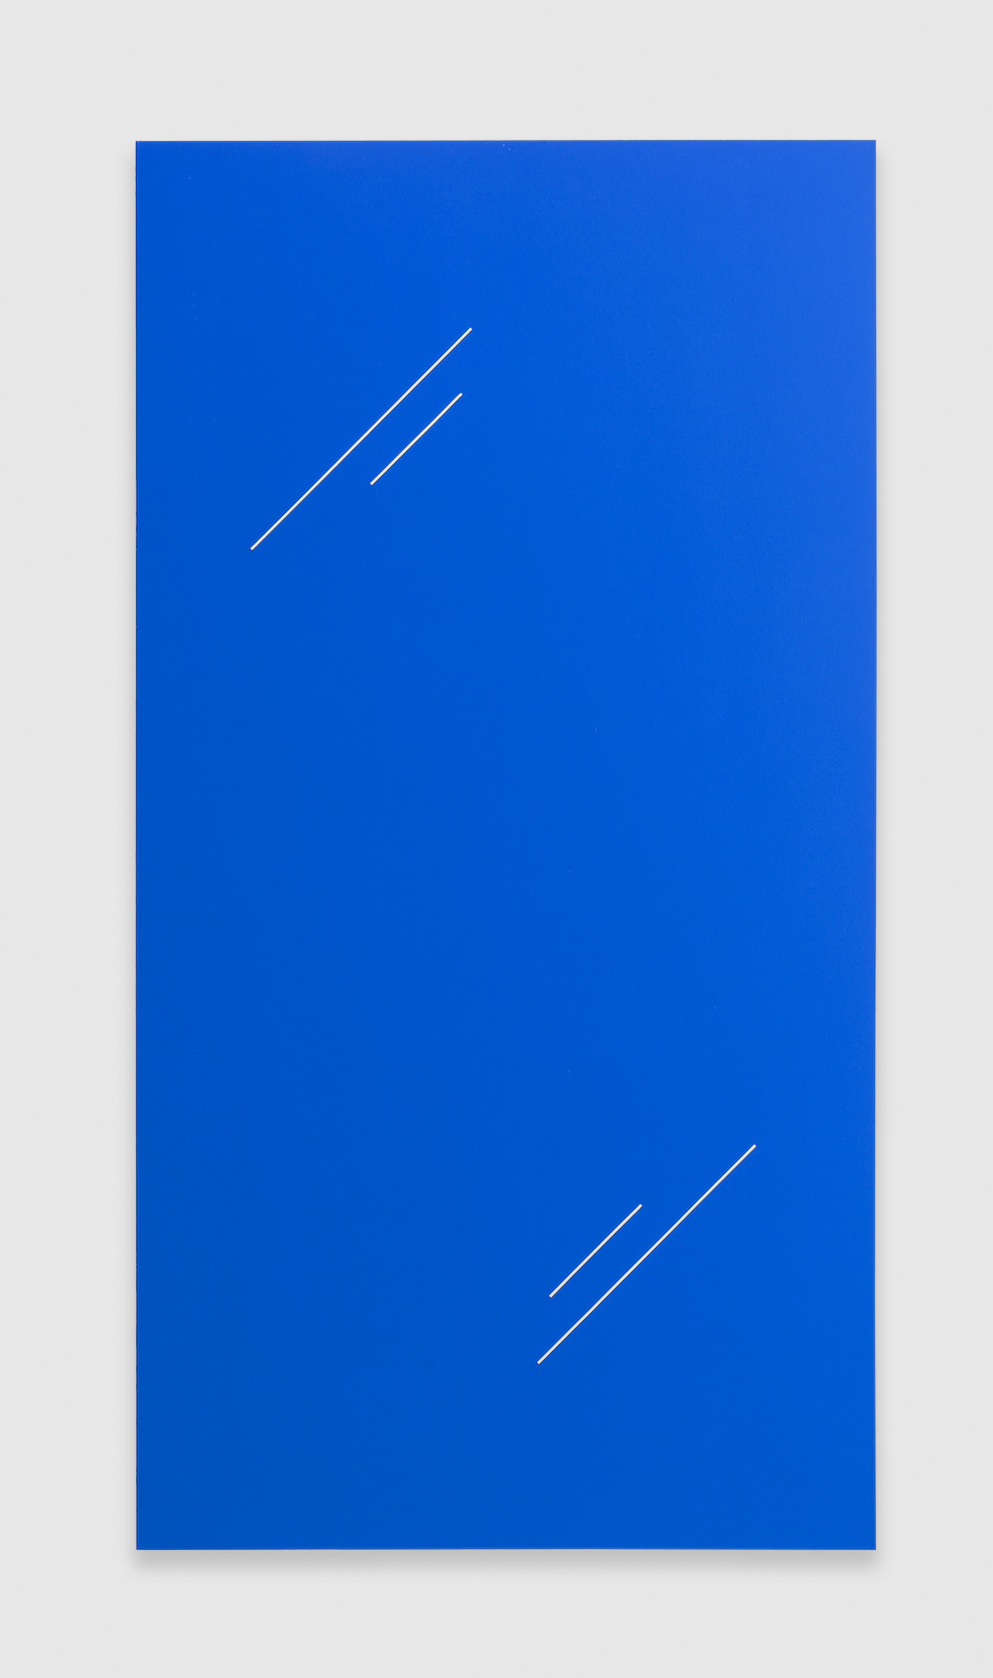 Paul Cowan  BCEAUSE THE SKY IS BULE  2013 Chroma-key blue paint on canvas 72h x 41w in PC078